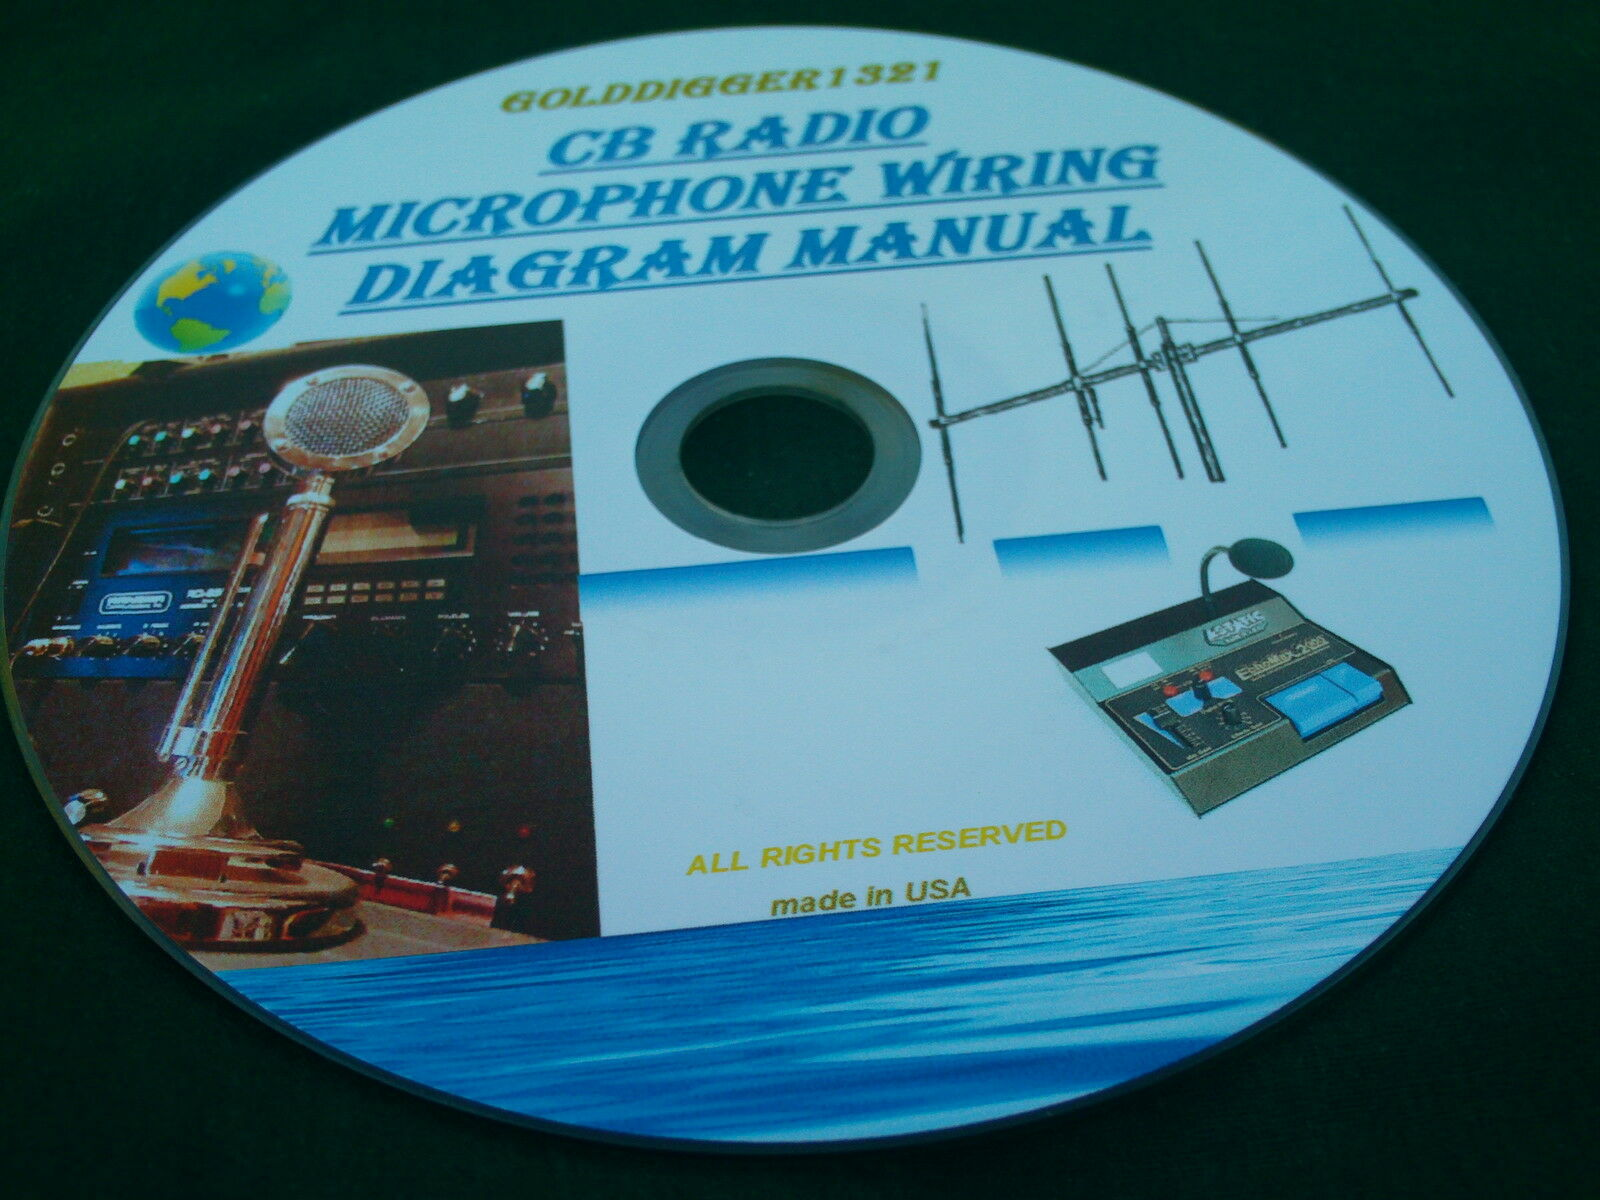 Cb Radio Microphone Wiring Diagram Manual On Cd 995 Picclick 1 Of See More